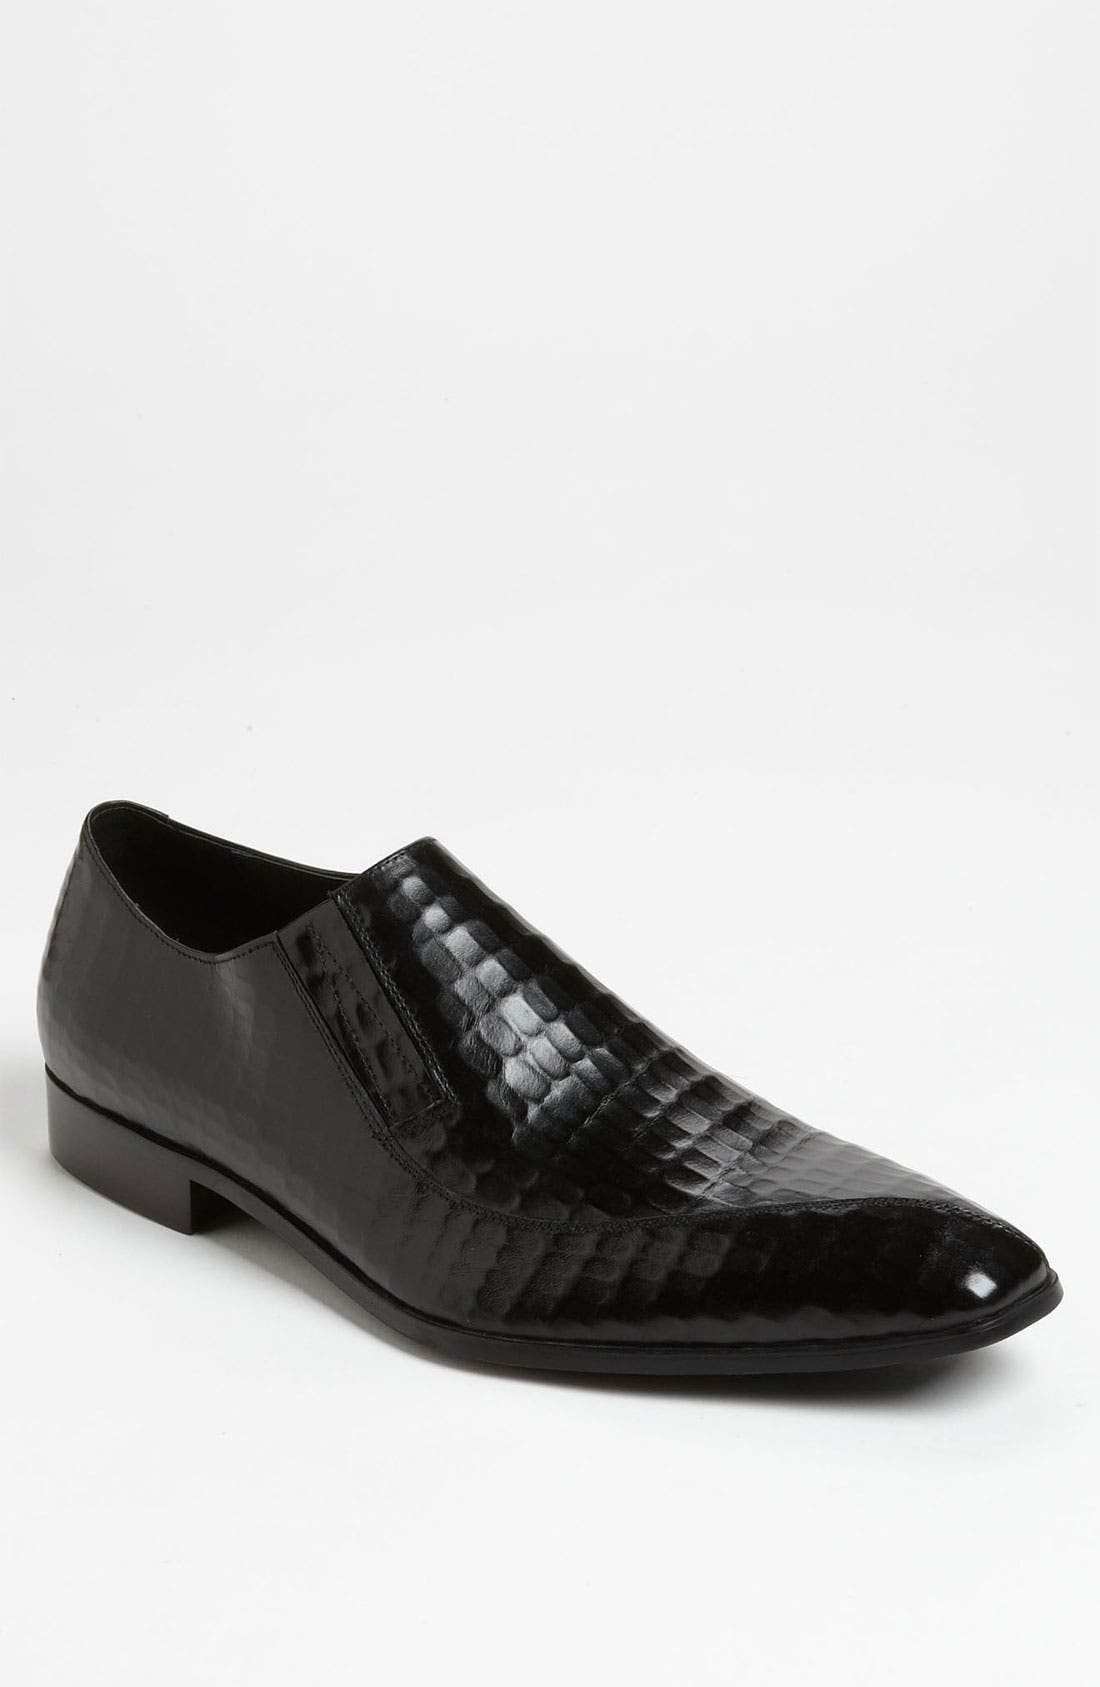 Main Image - Kenneth Cole New York 'Top Class' Slip-On